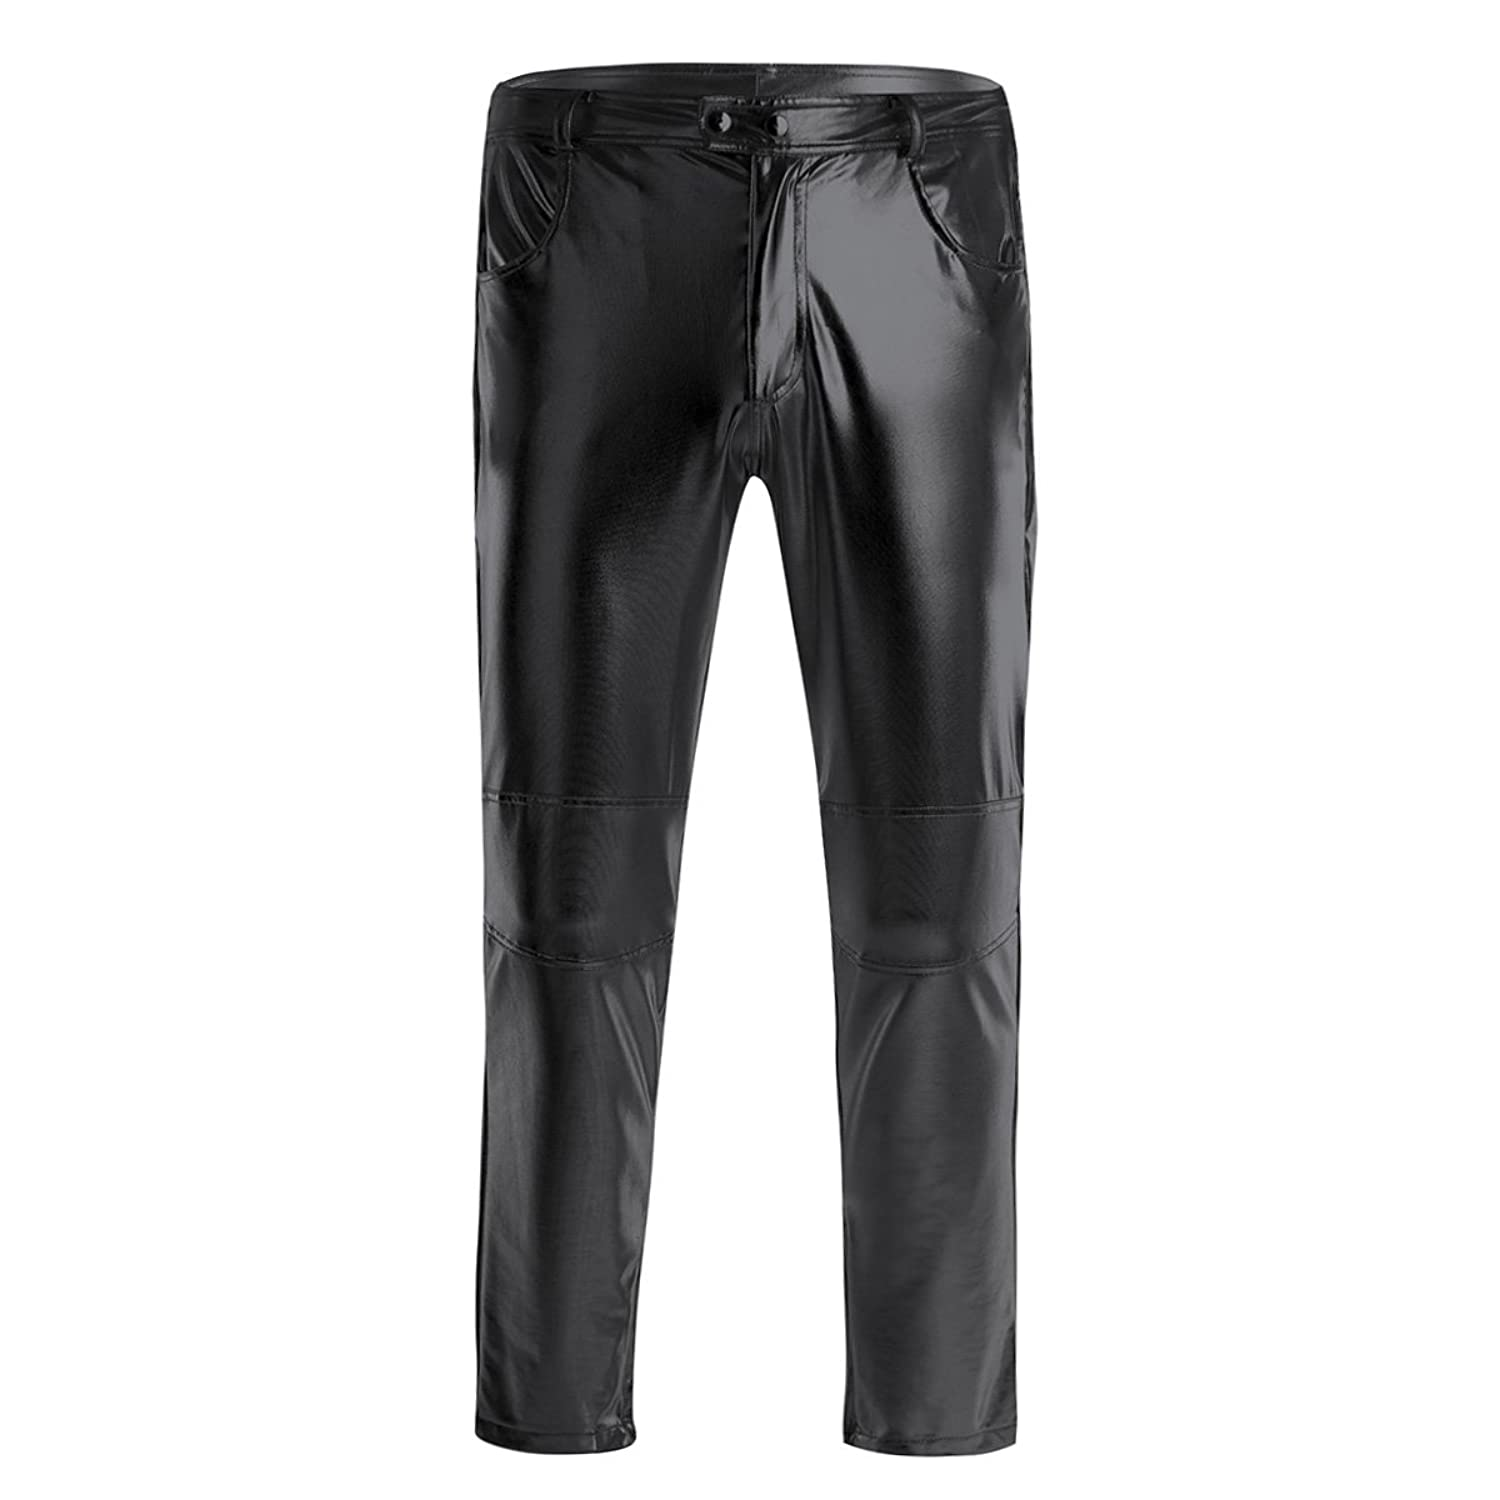 3f8ed51de87360 Mens faux PU leather skinny long pants, skinny fit. Made of soft faux  leather fabric, comfortable and lightweight. Waistline with two snap  buttons fasten, ...